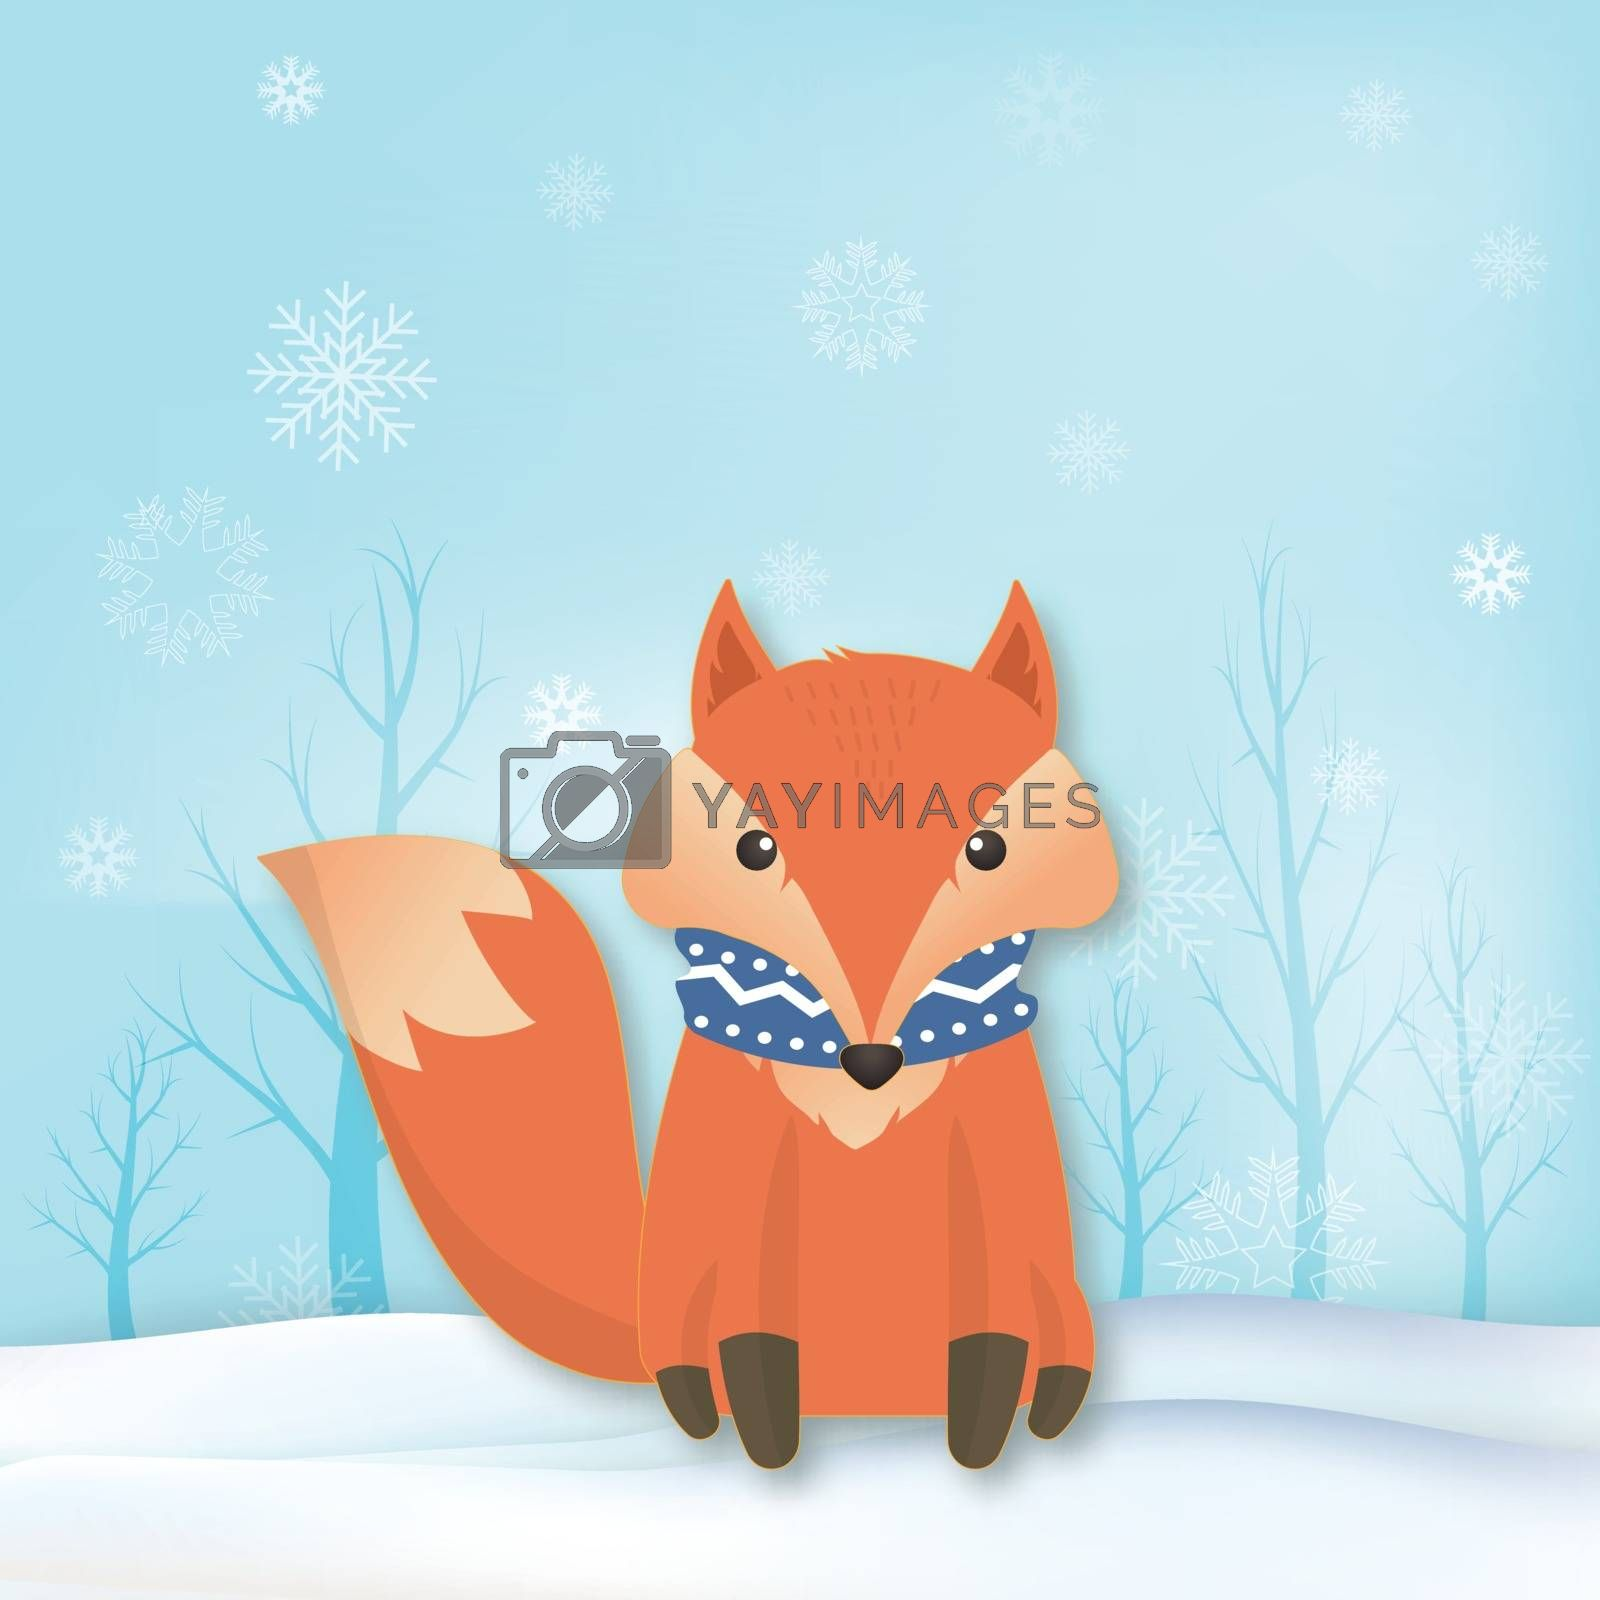 Paper art of Fox with snowflake and sky background  Christmas season winter holiday paper craft style illustration.